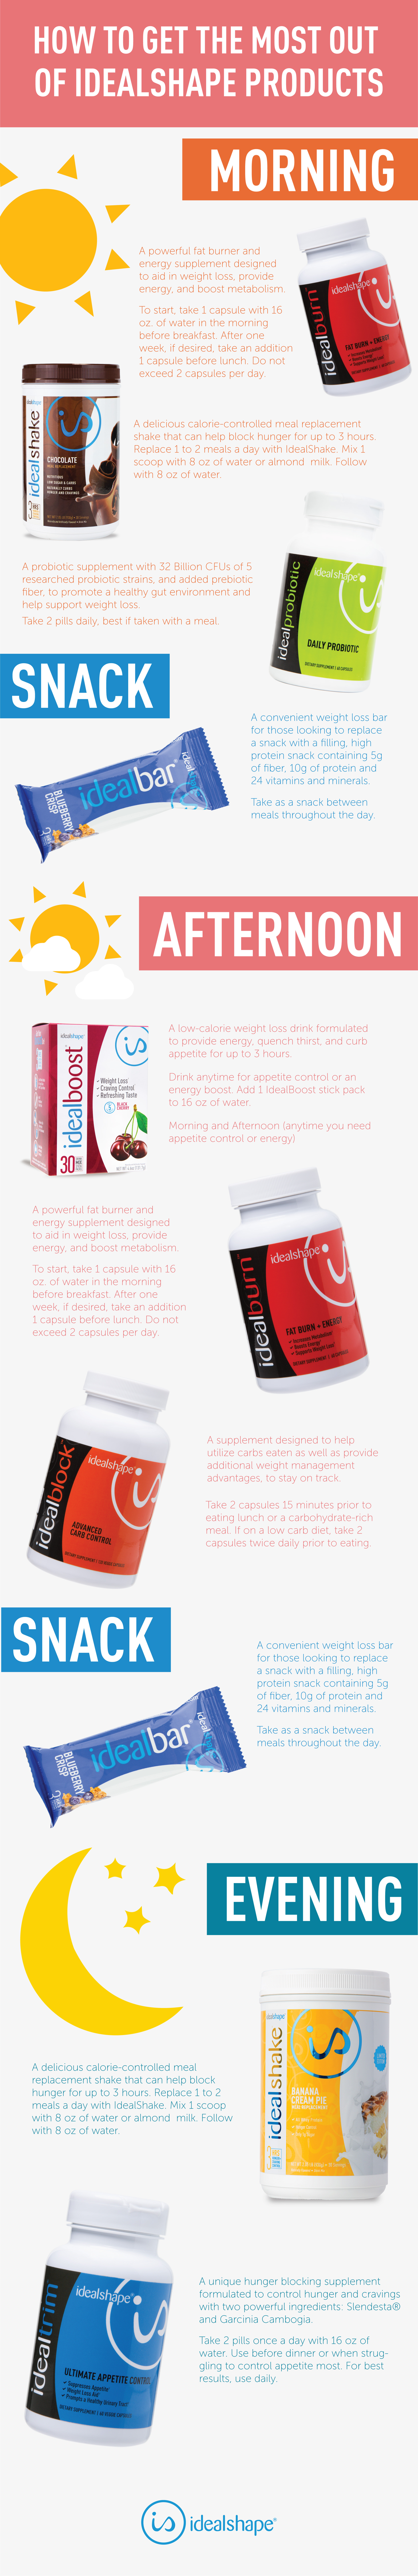 an infographic to show how to use idealshape products